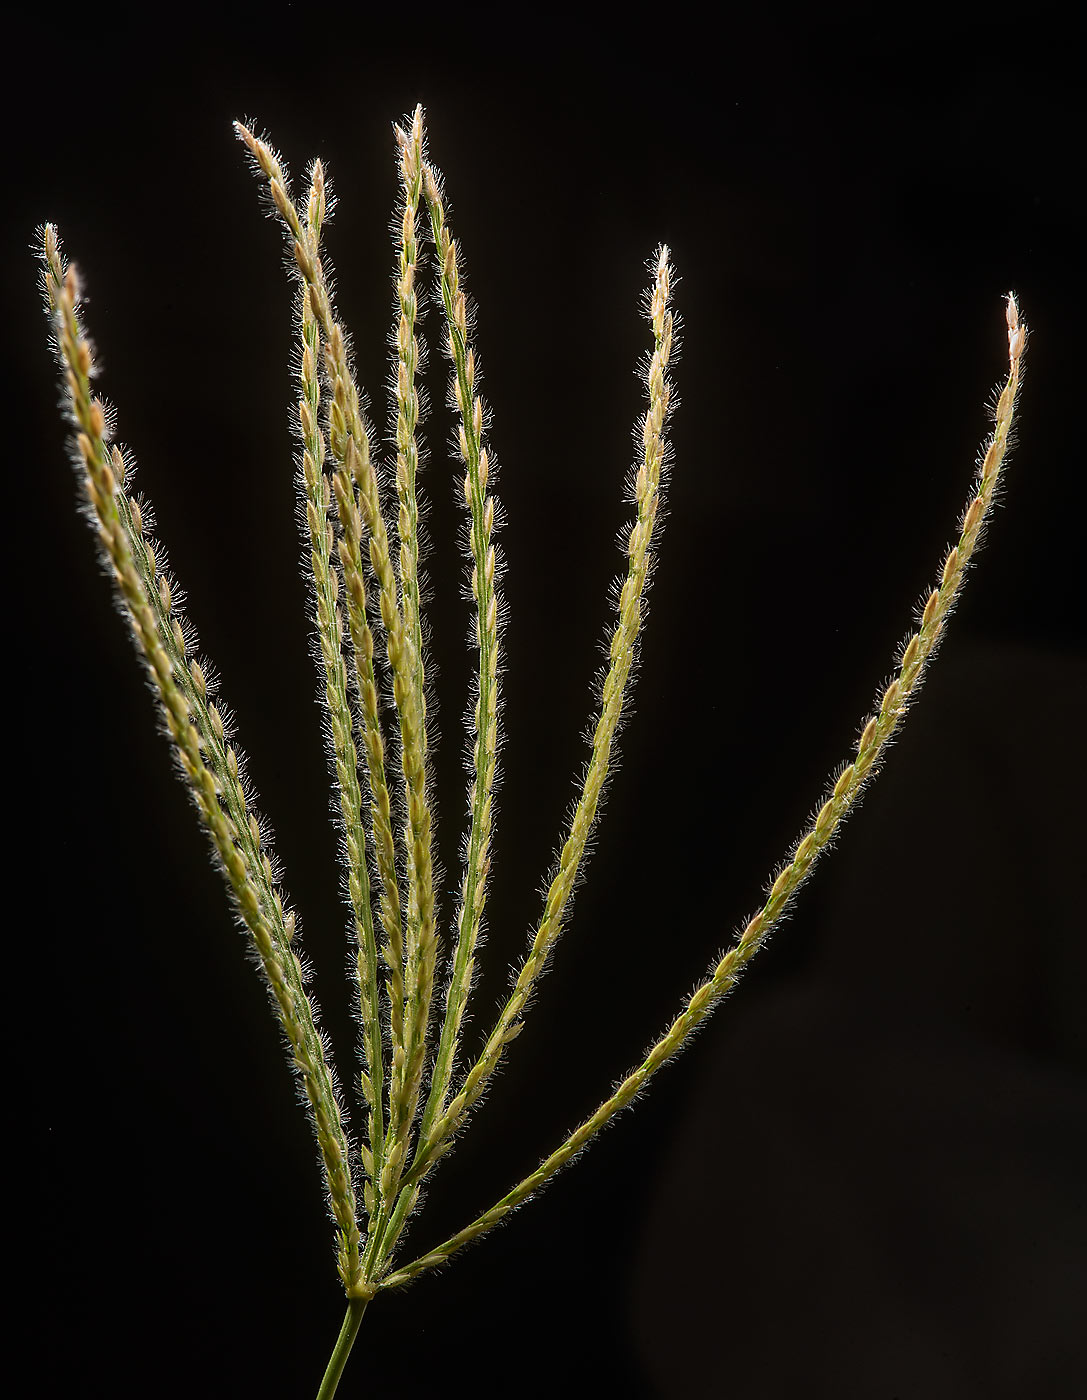 Grass spikelet of Asian crabgrass (Digitaria...Sham St. in Onaiza area. Doha, Qatar